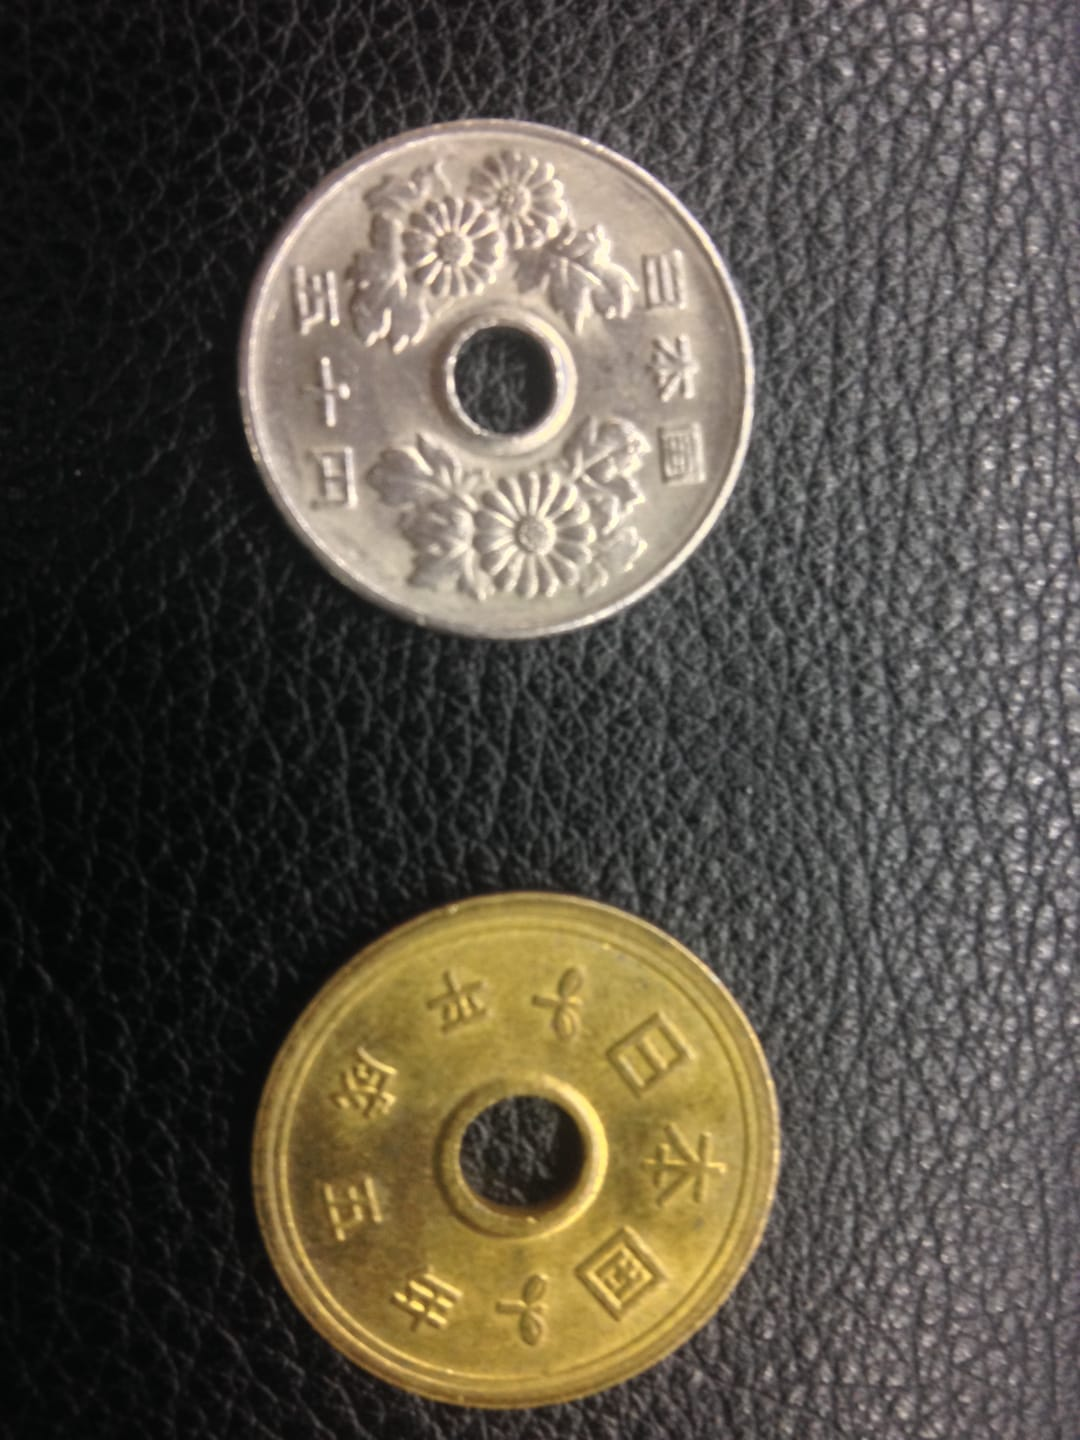 Japanese coins have holes one of 8 interesting facts about Japan